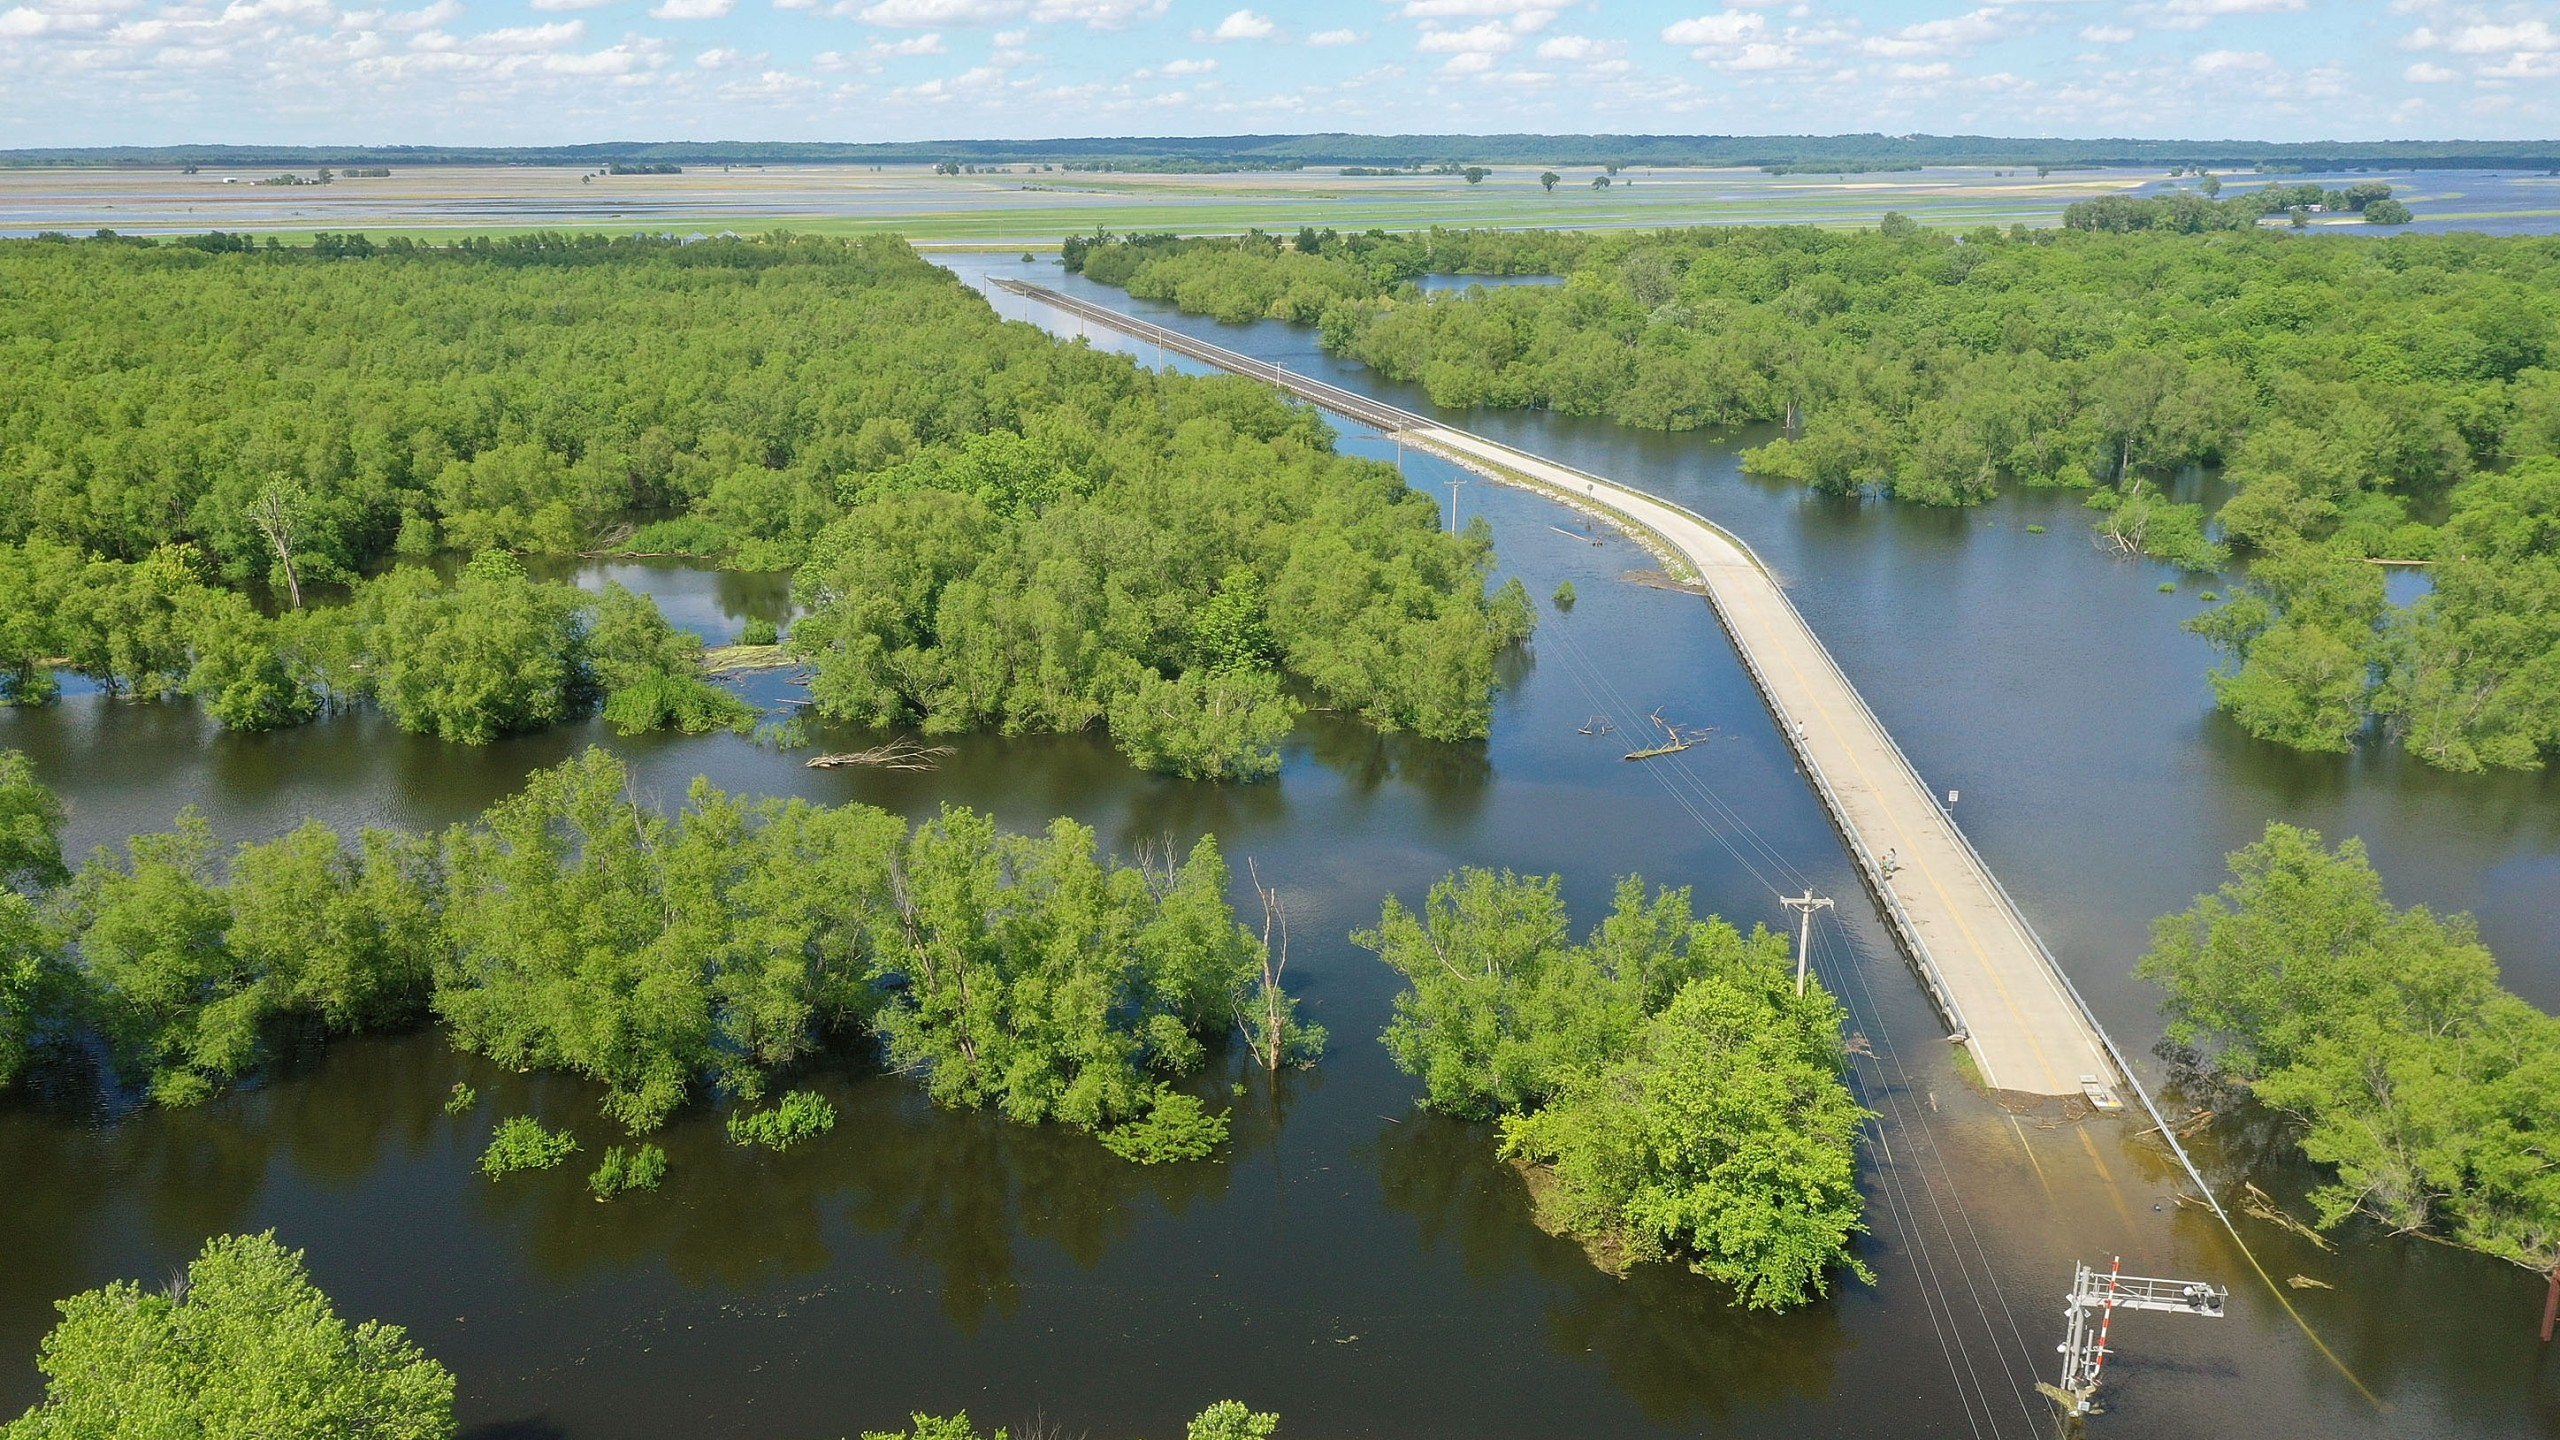 Floodwater from the Mississippi River cuts off the roadway from Missouri into Illinois at the states' border on May 30, 2019 in Saint Mary, Missouri. (Credit: Scott Olson/Getty Images)